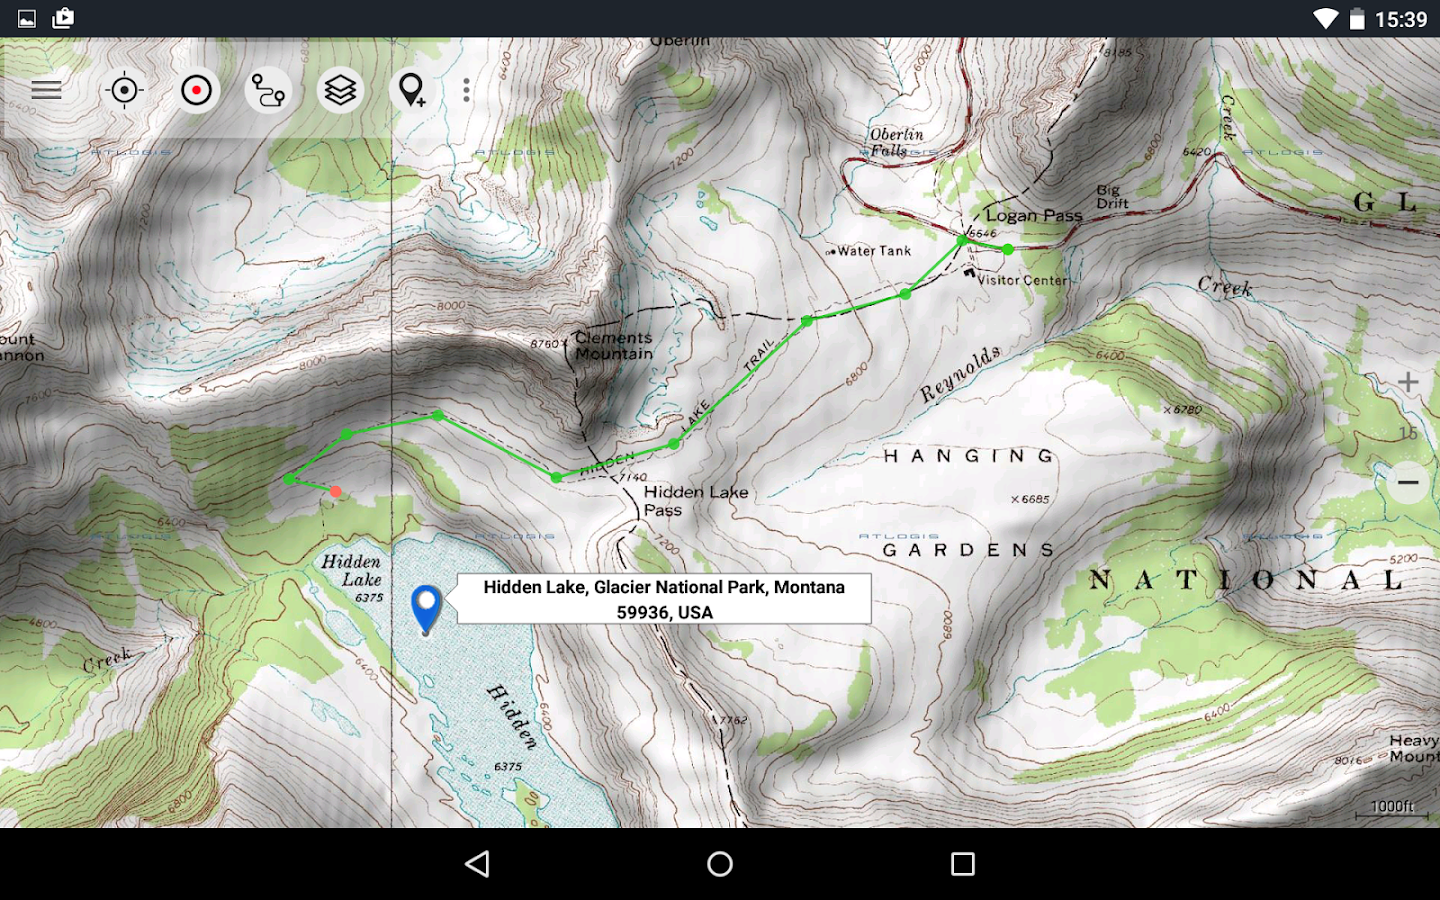 US Topo Maps Pro Android Apps On Google Play - Us topo maps pro